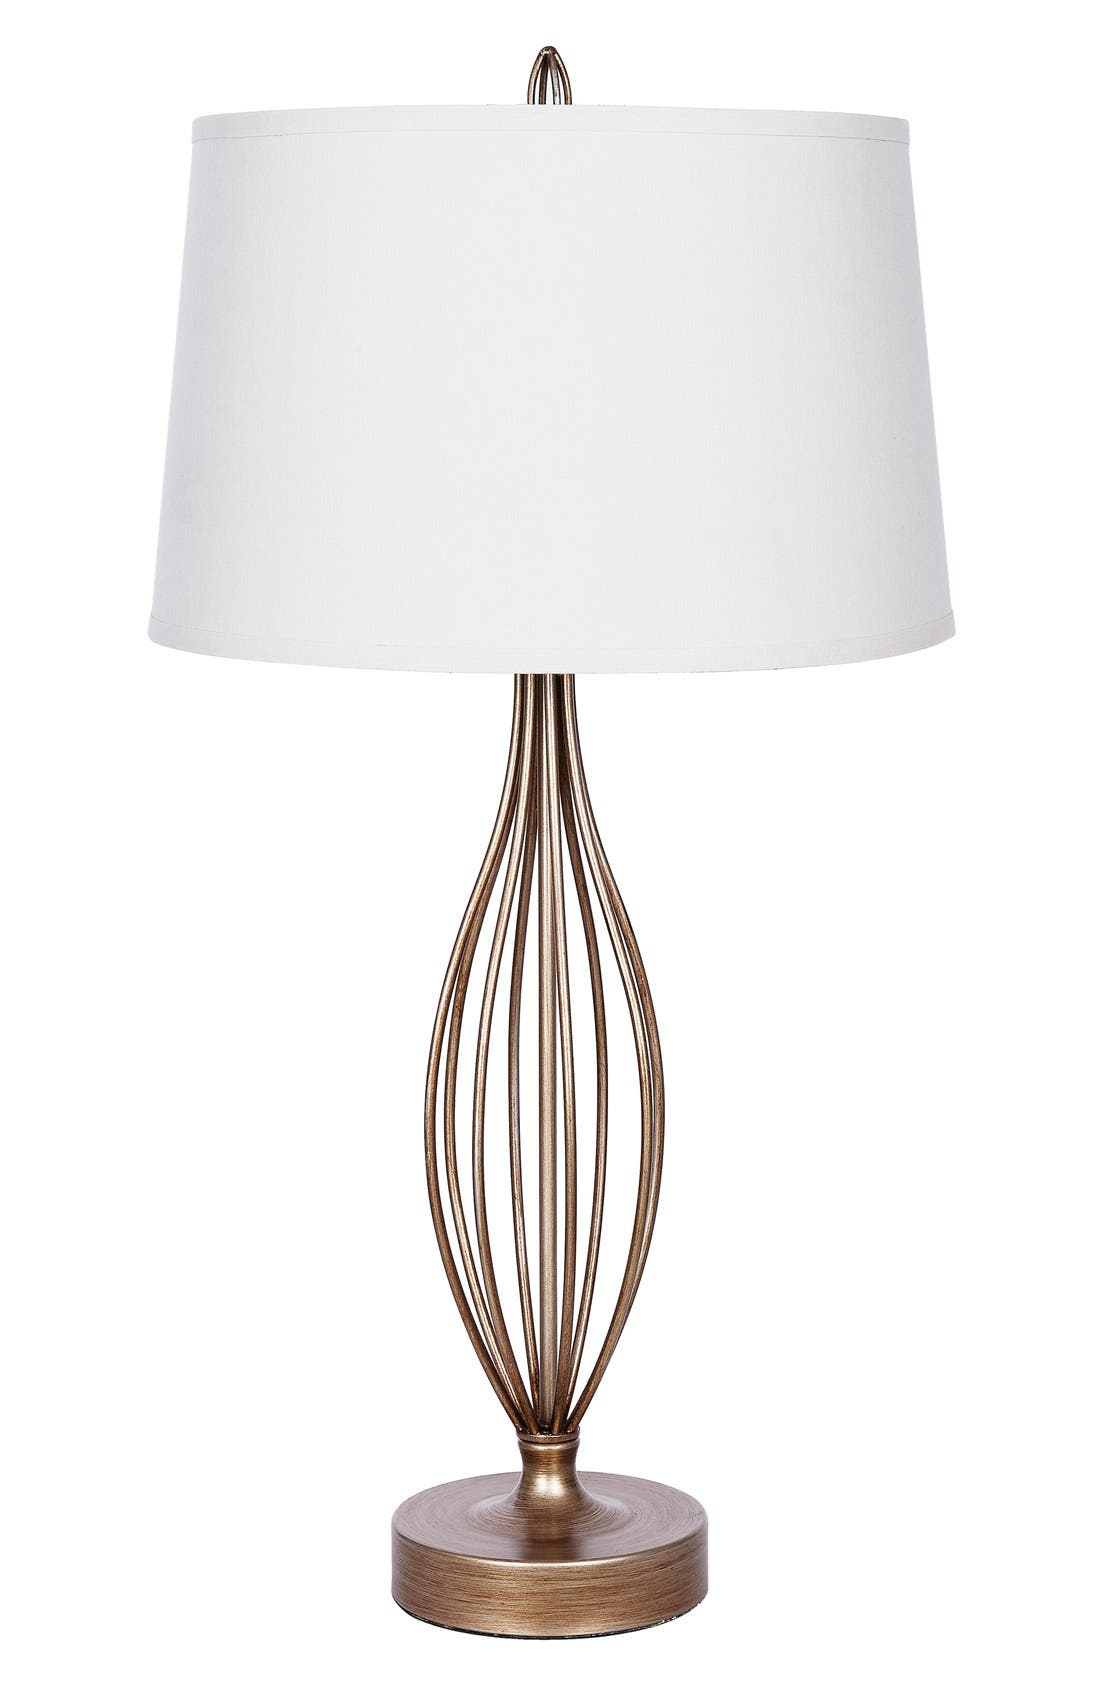 Main Image - JAlexander Tessa Metal Table Lamp